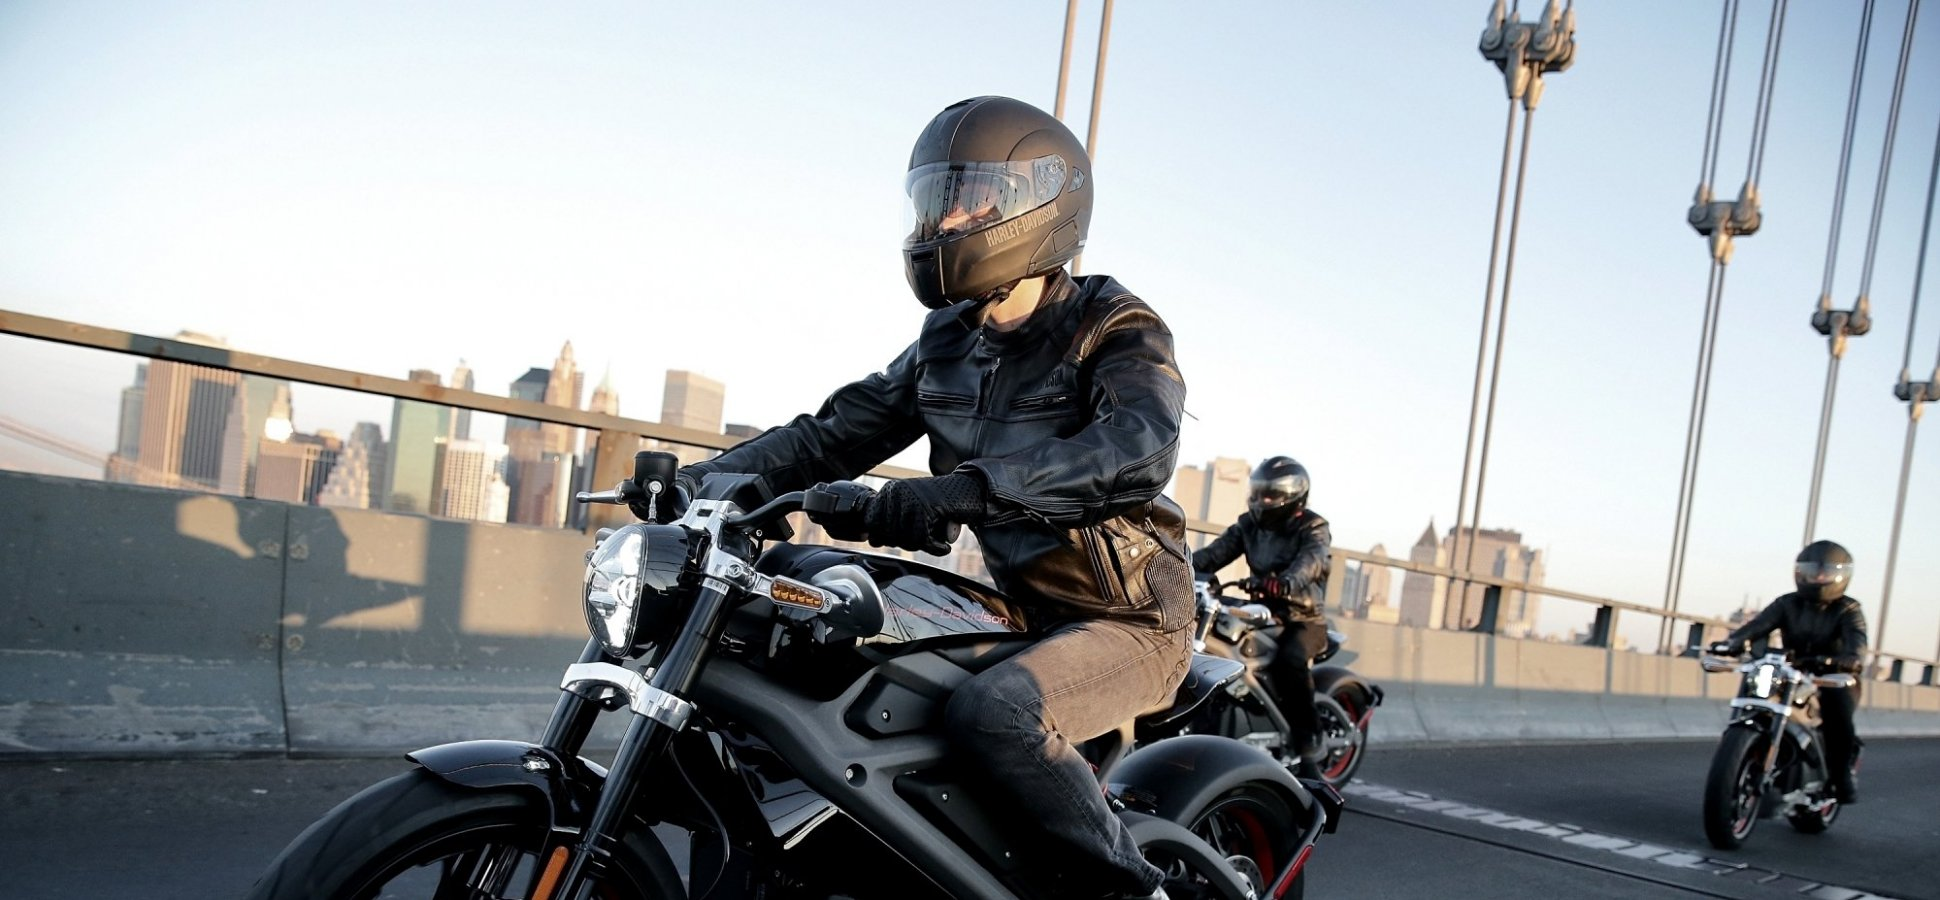 The Harley-Davidson Communication Strategy That Will Position You as a Market Leader